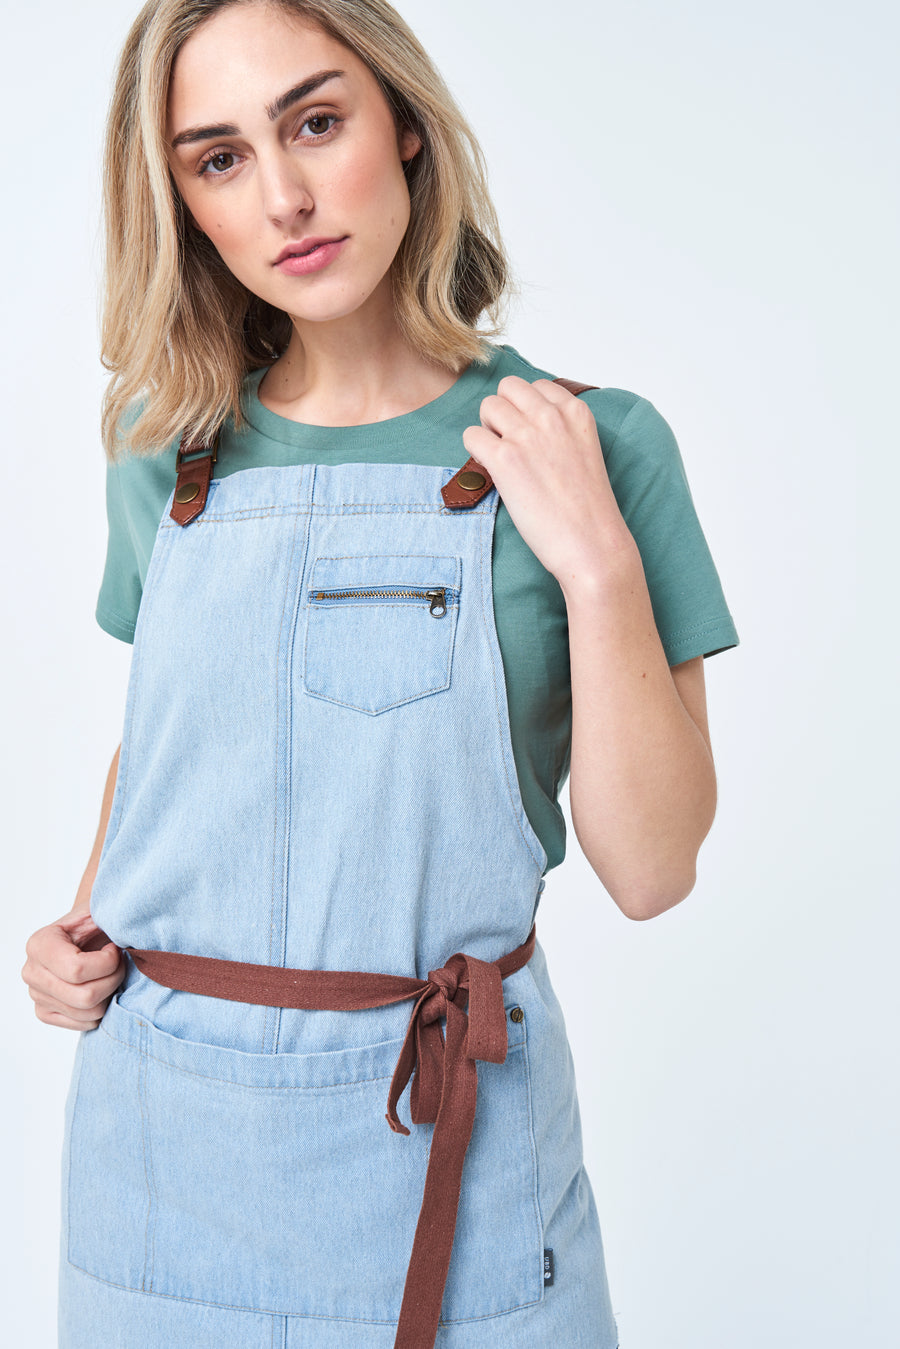 BERMUDA Apron with PU Leather Straps - Bleached Denim